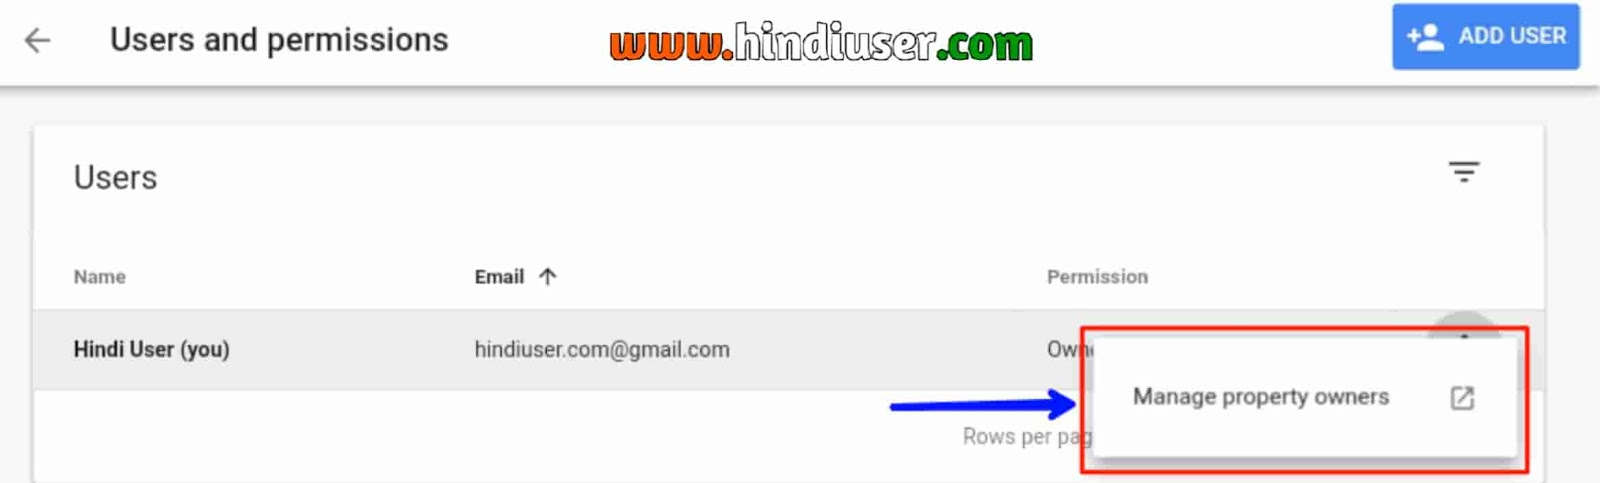 Blog Ko Google Search Console Me Submit Kaise Kare